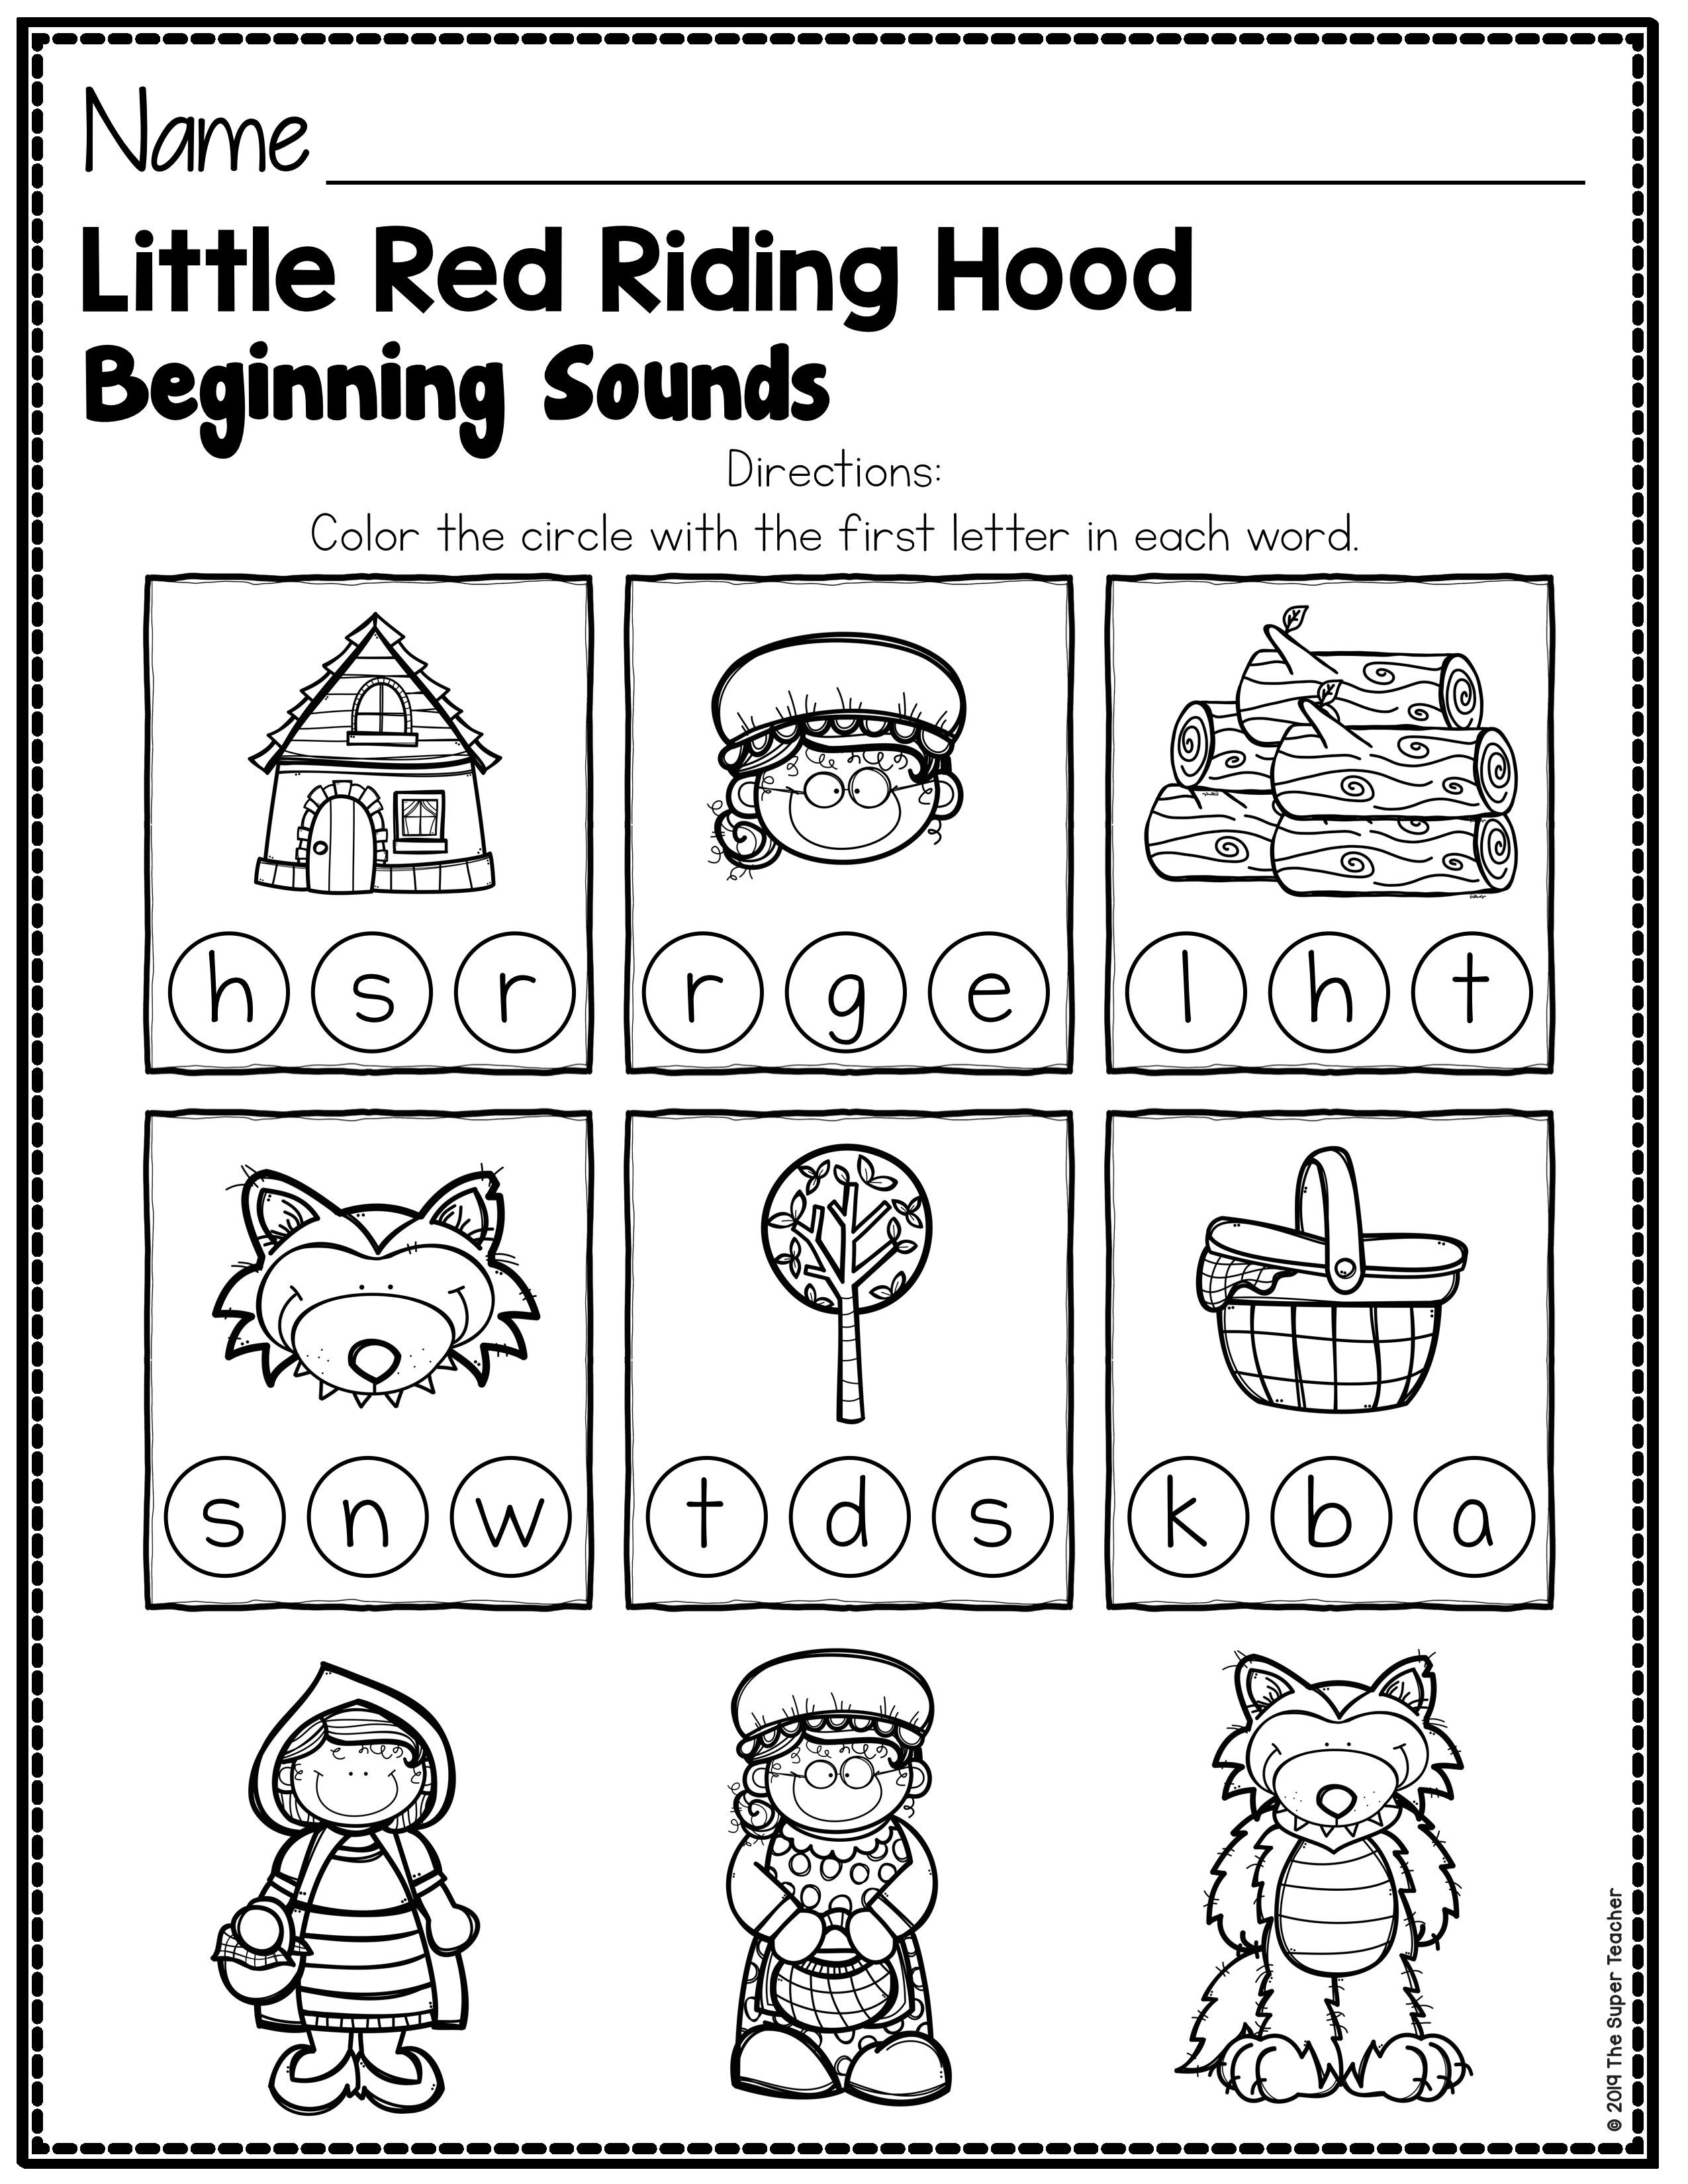 1st Grade Phonics Worksheets All About Worksheet Little Red Riding Hood Red Riding Hood Story Writing Worksheets